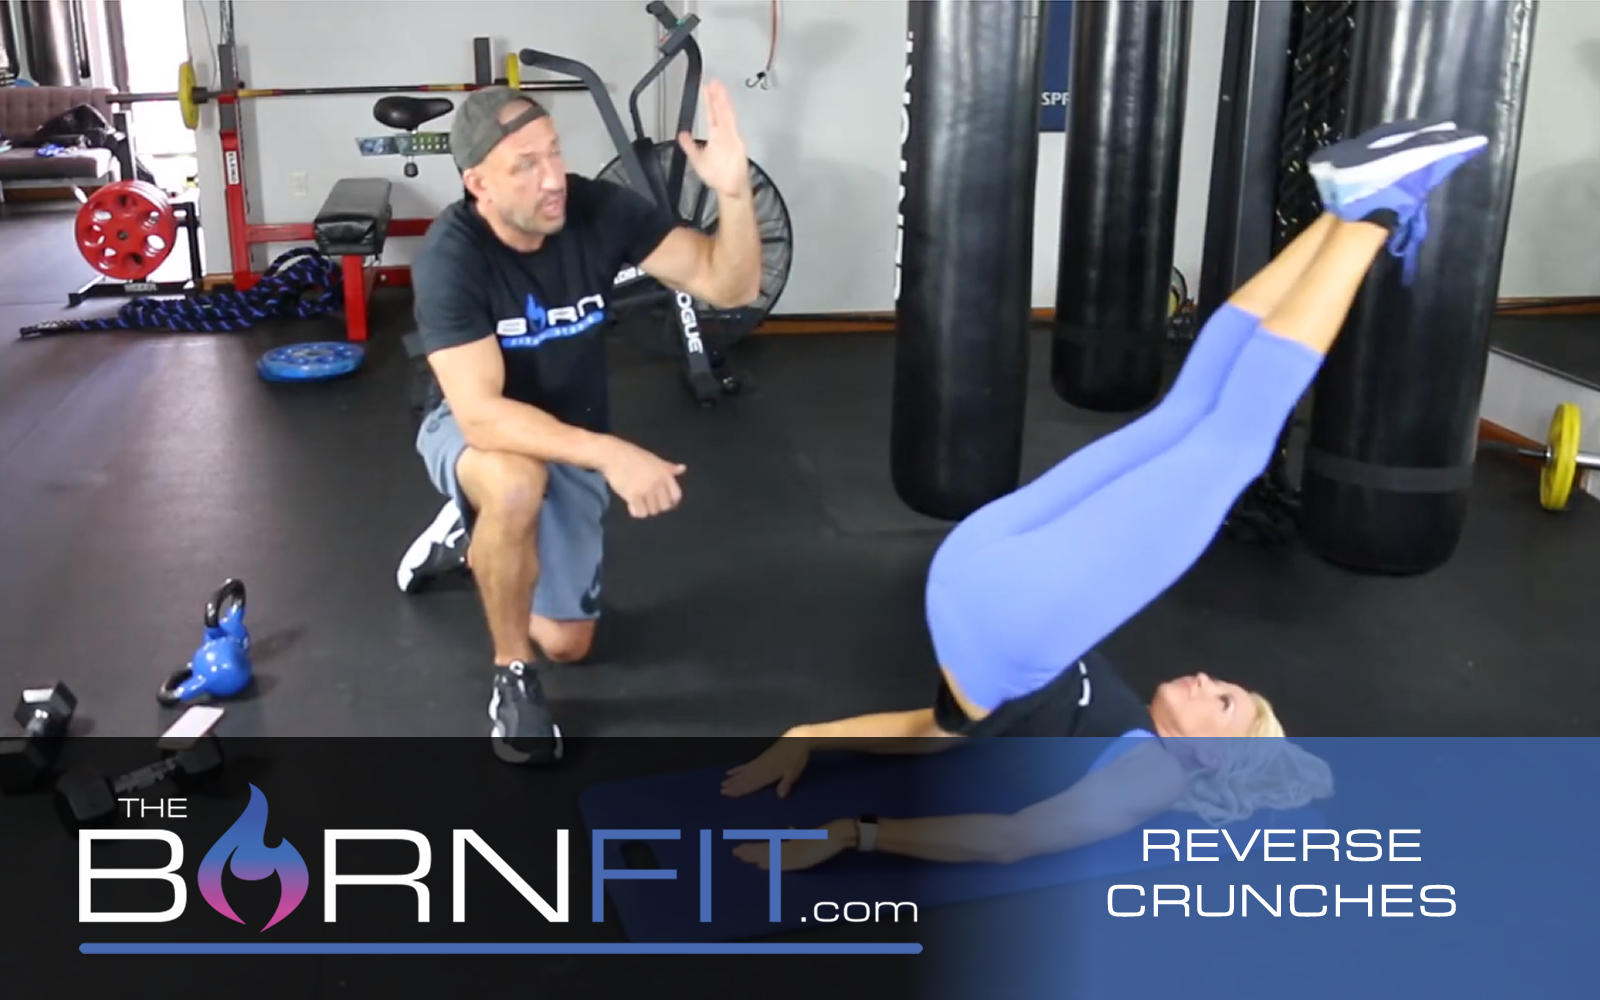 reverse crunches workout